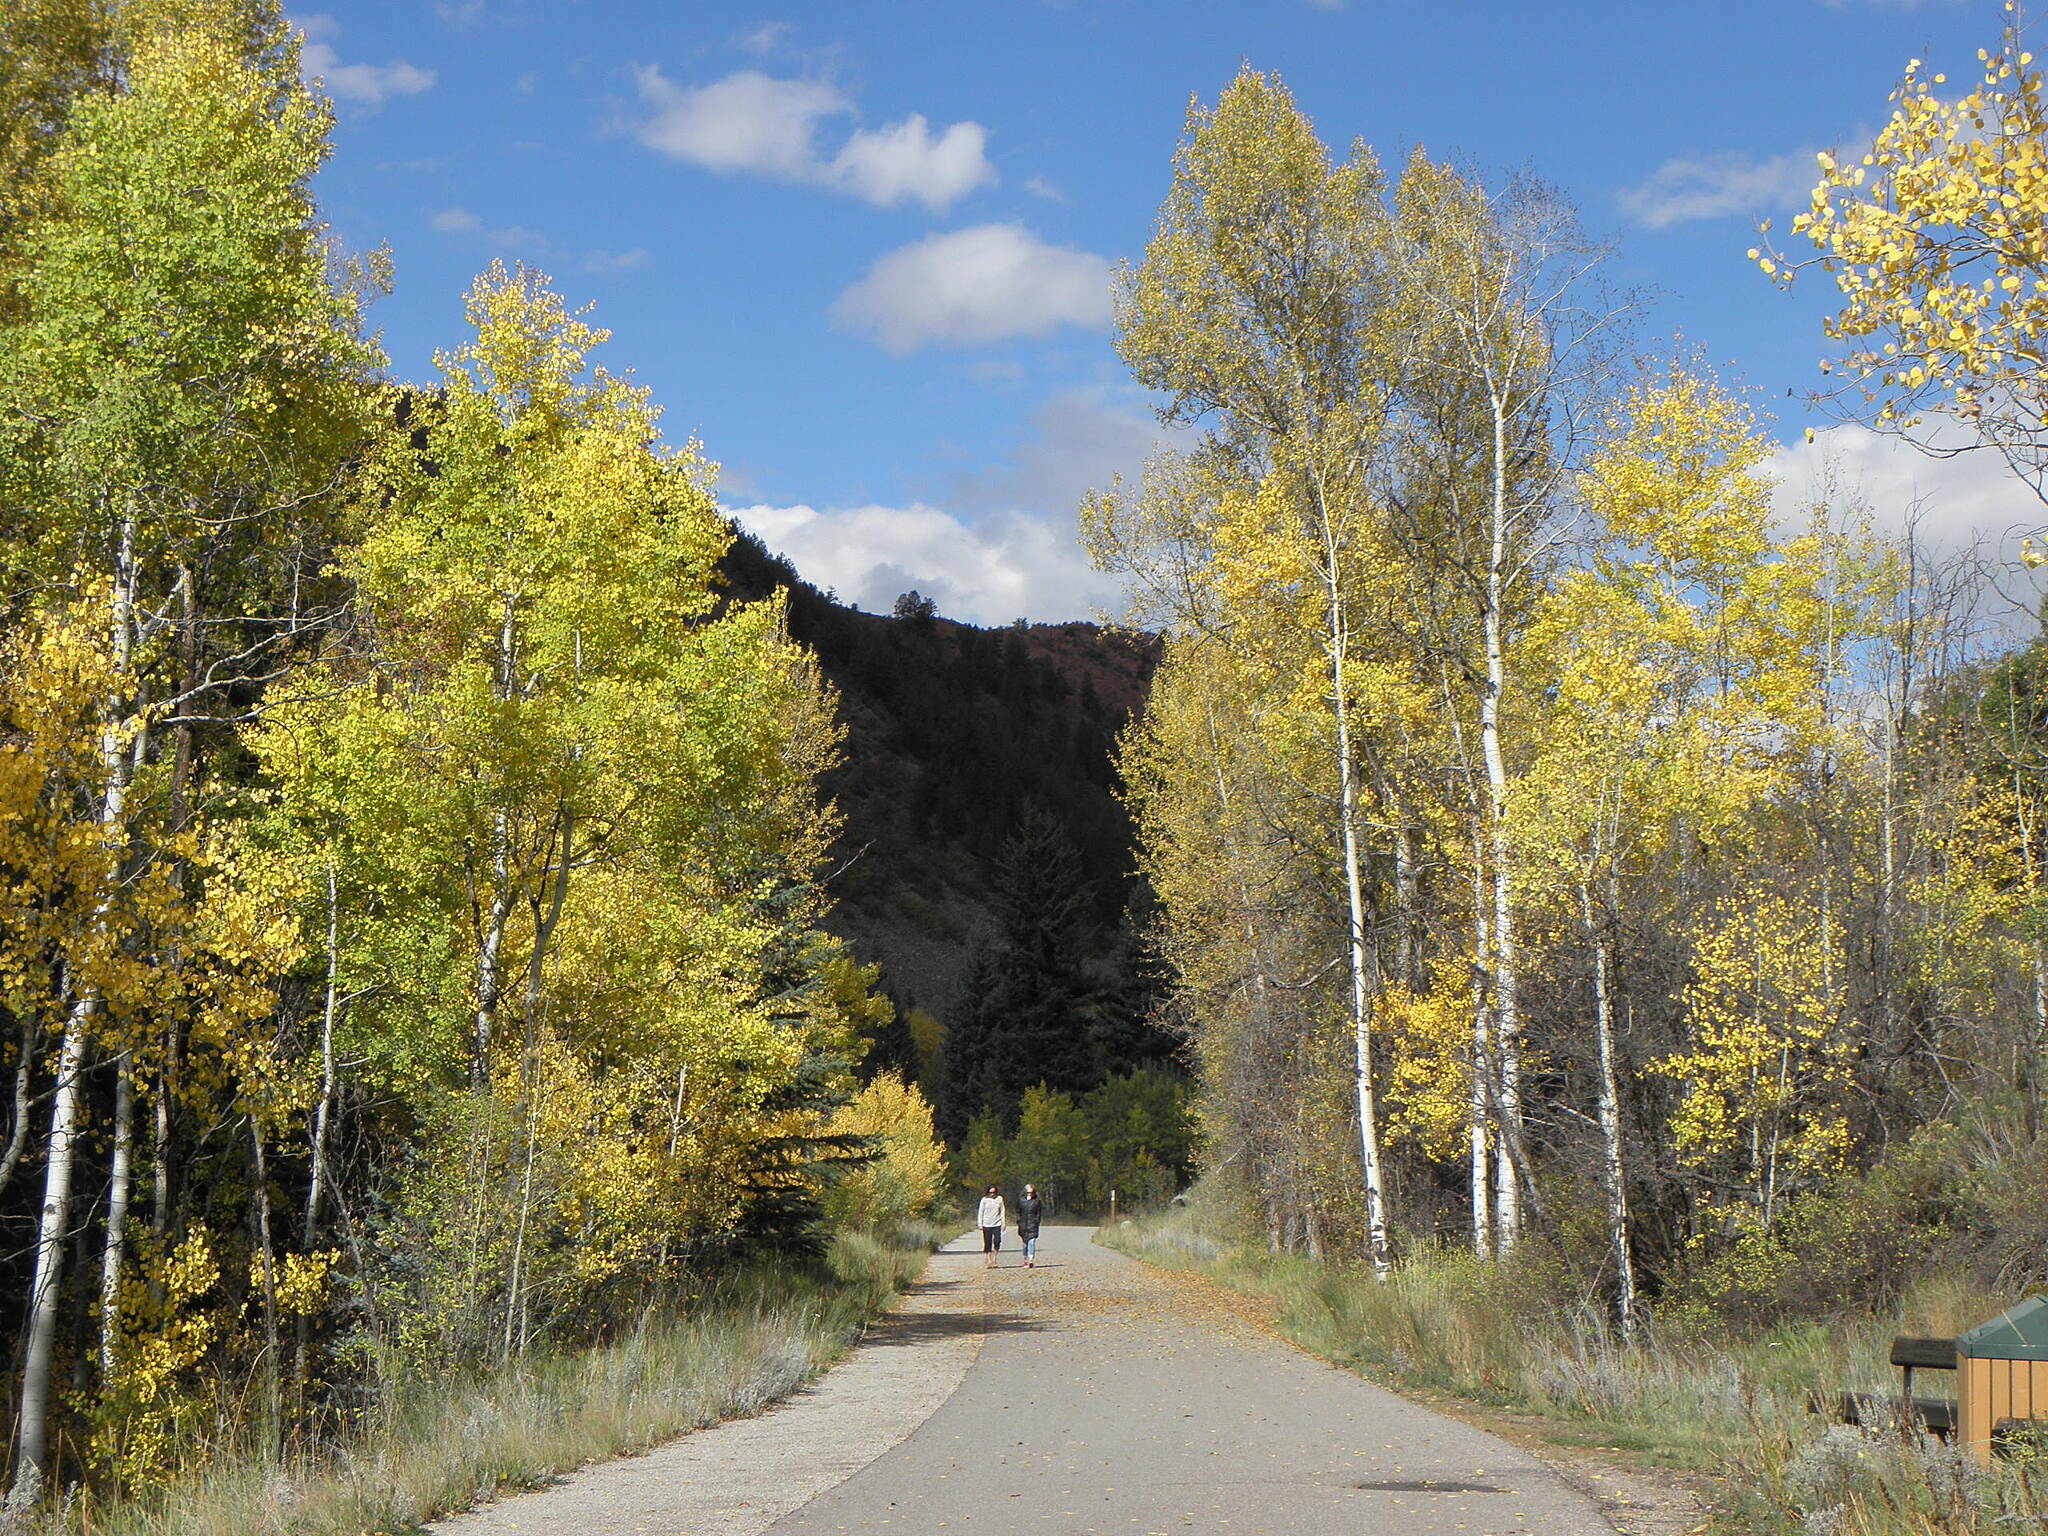 Rio Grande Trail Fall colors near Aspen Aspen trees 'blooming' in late September.